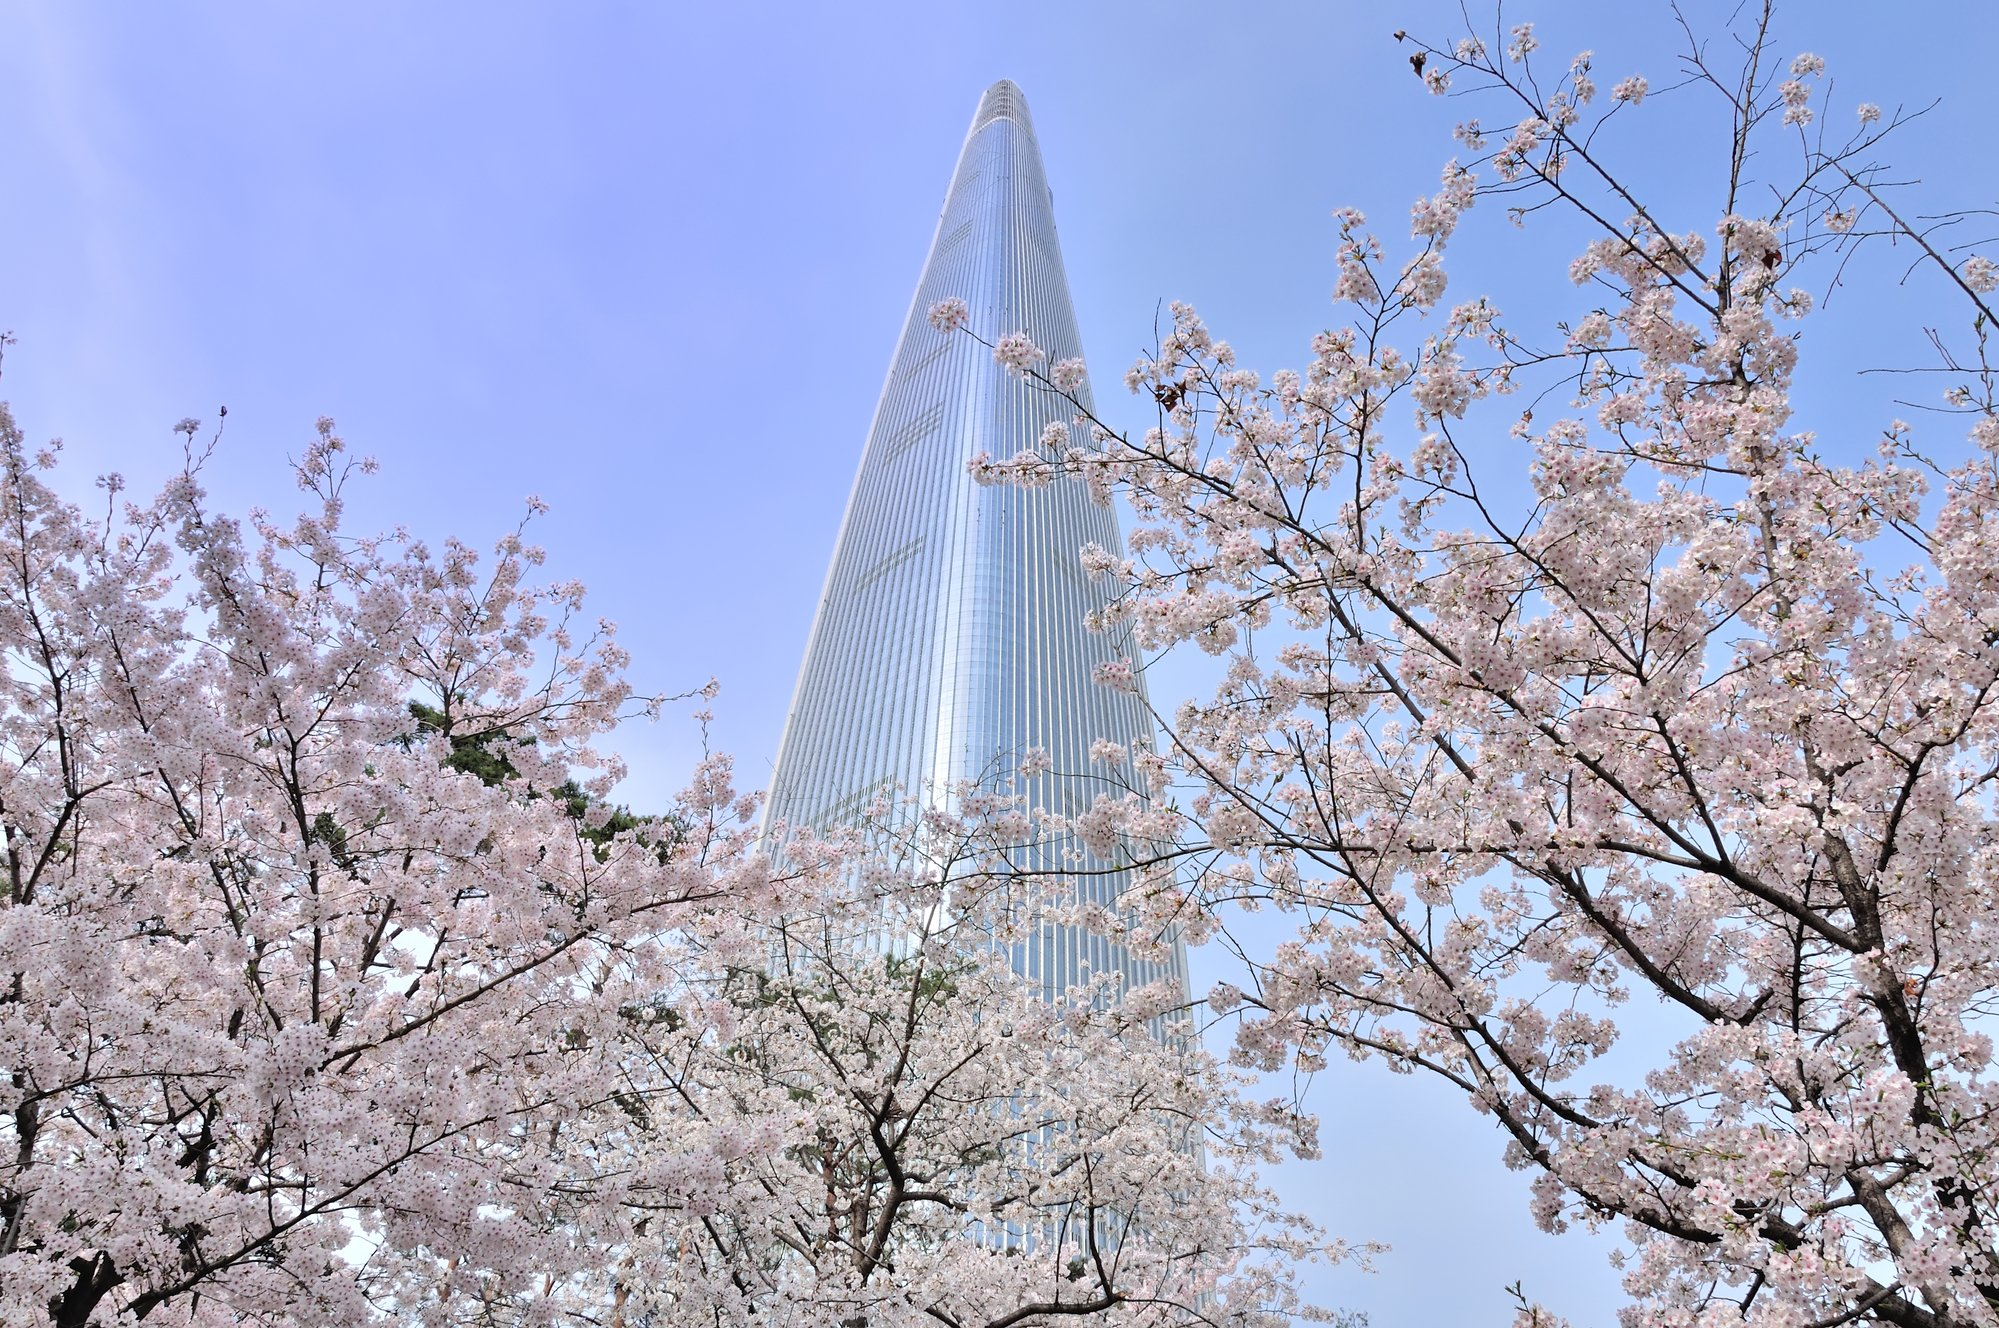 Highlights Of Korea And Japan Cherry Blossom Tour 2022 2023 All Japan Tours